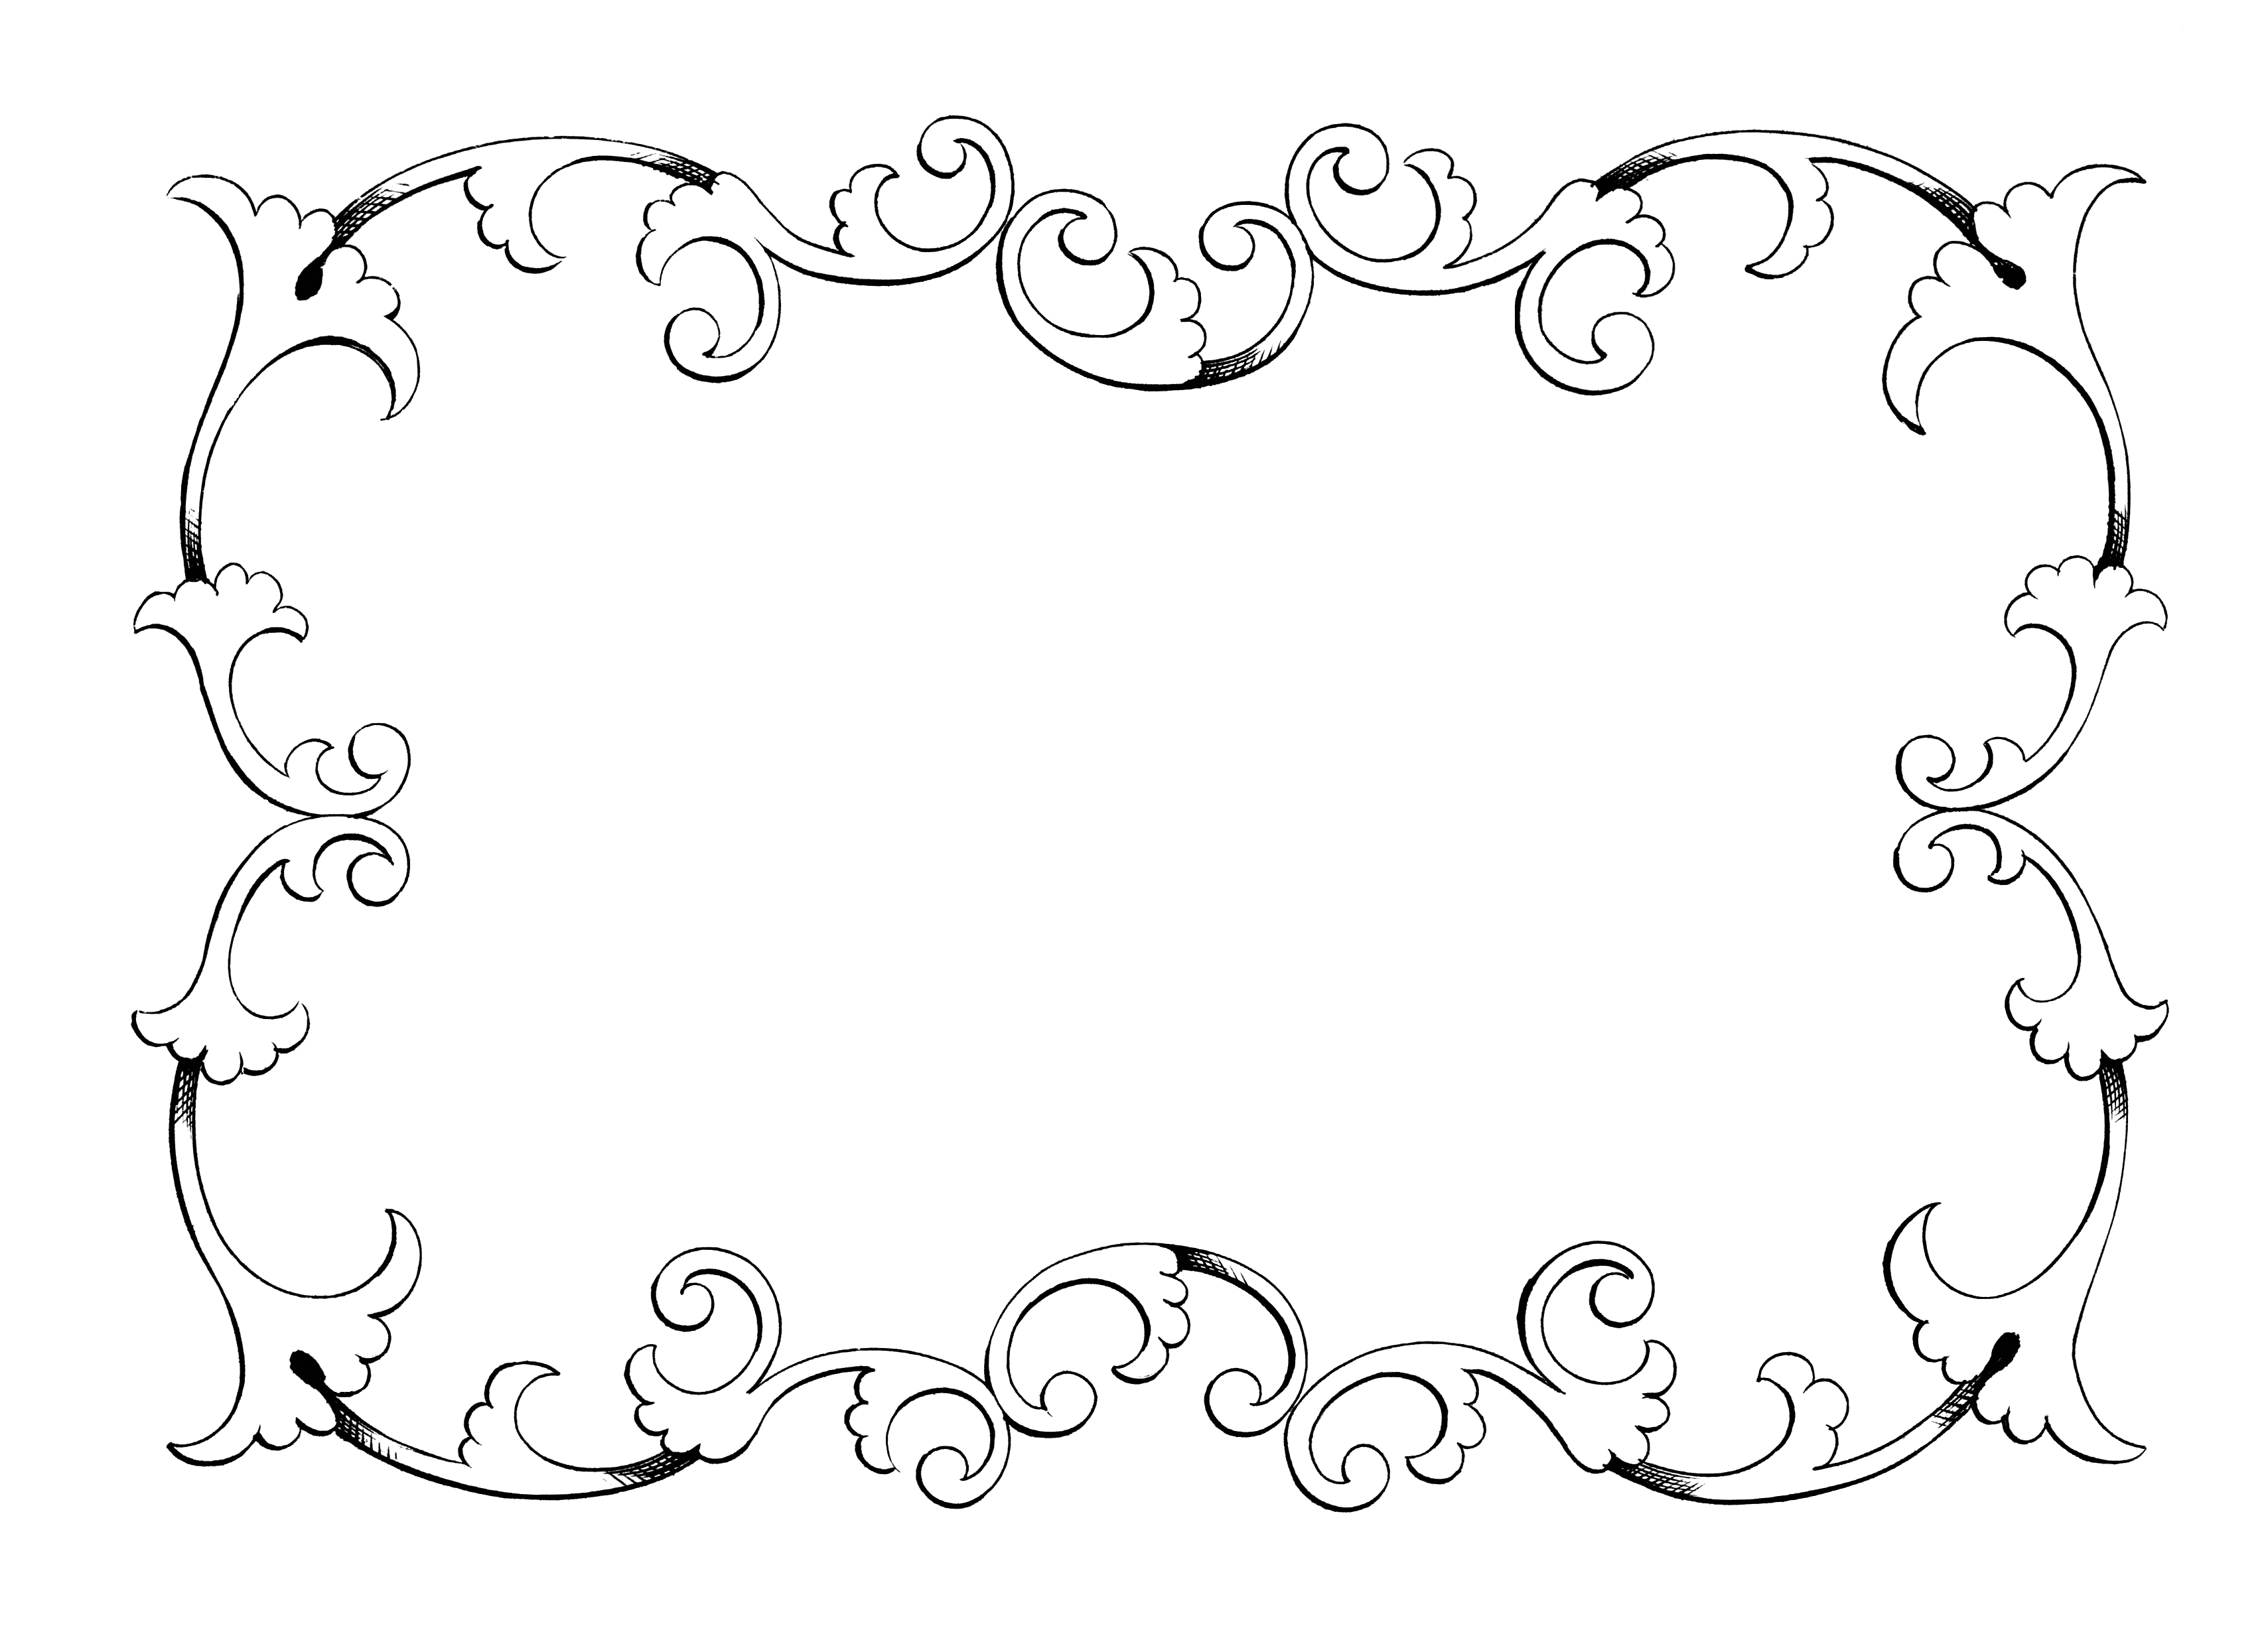 Calligraphy border cliparts